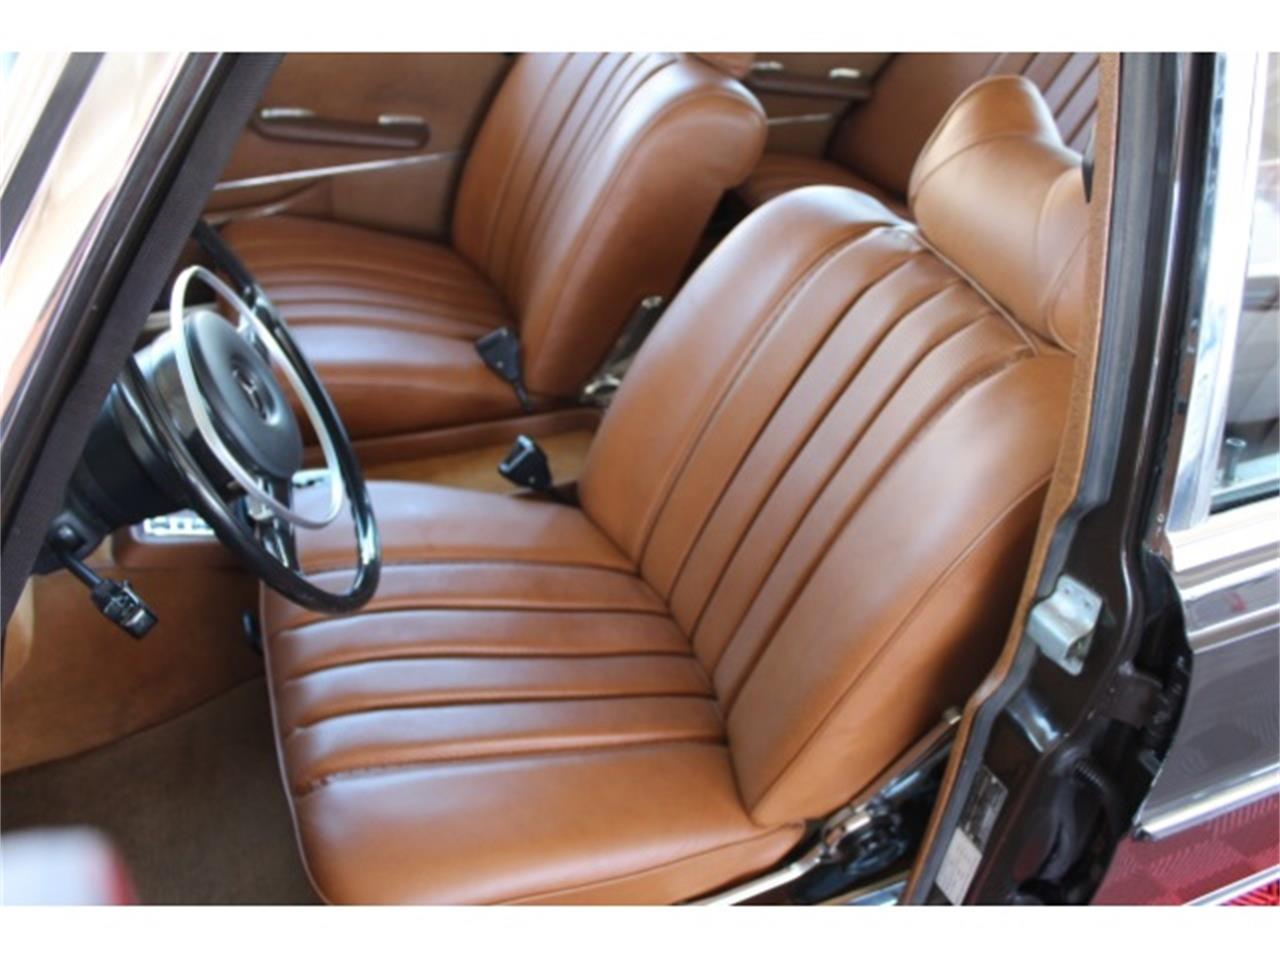 1972 Mercedes-Benz 300SEL for sale in Sherman Oaks, CA – photo 15